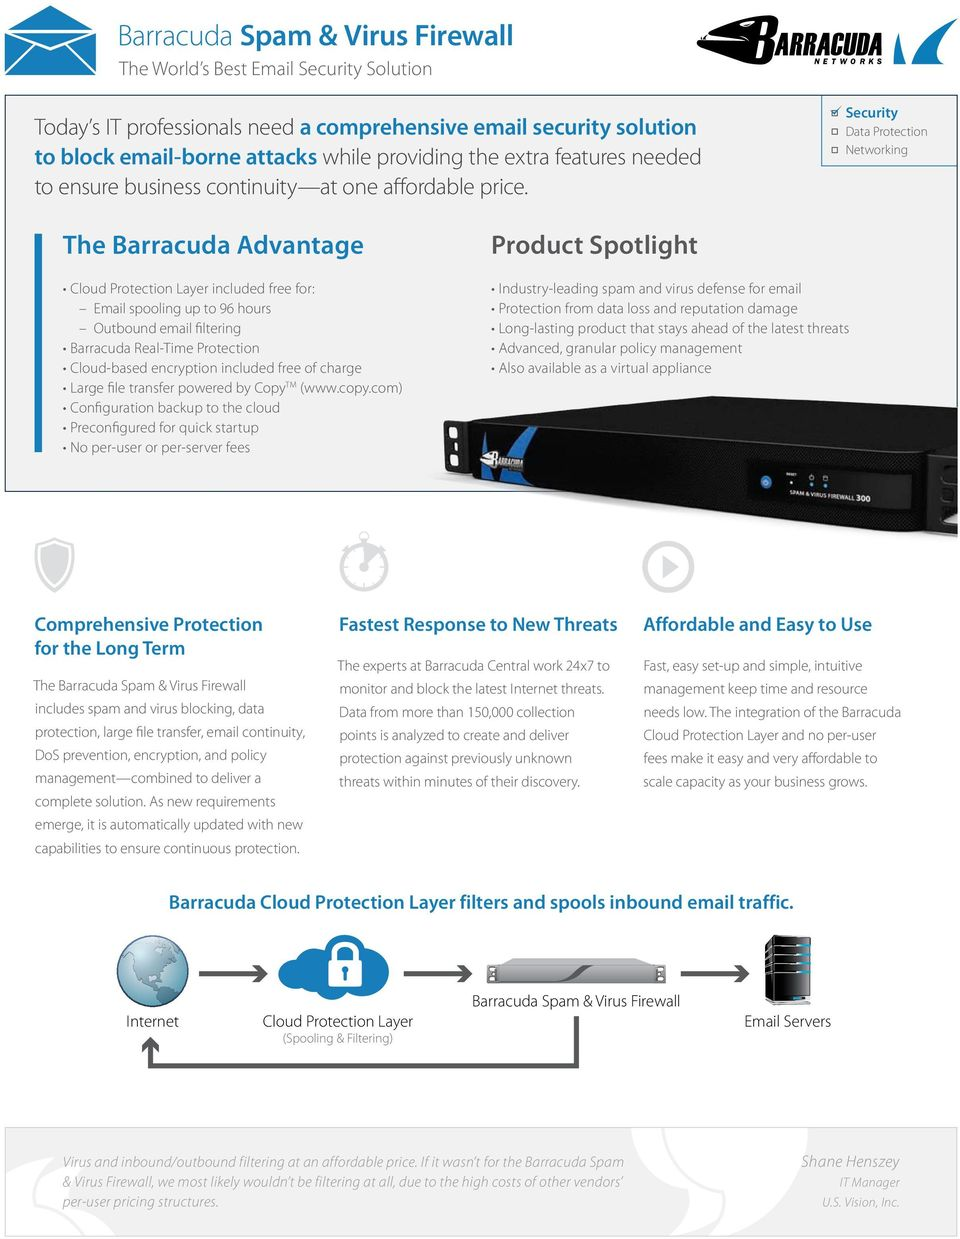 Security Data Protection Networking The Barracuda Advantage Cloud Protection Layer included free for: Email spooling up to 96 hours Outbound email filtering Barracuda Real-Time Protection Cloud-based